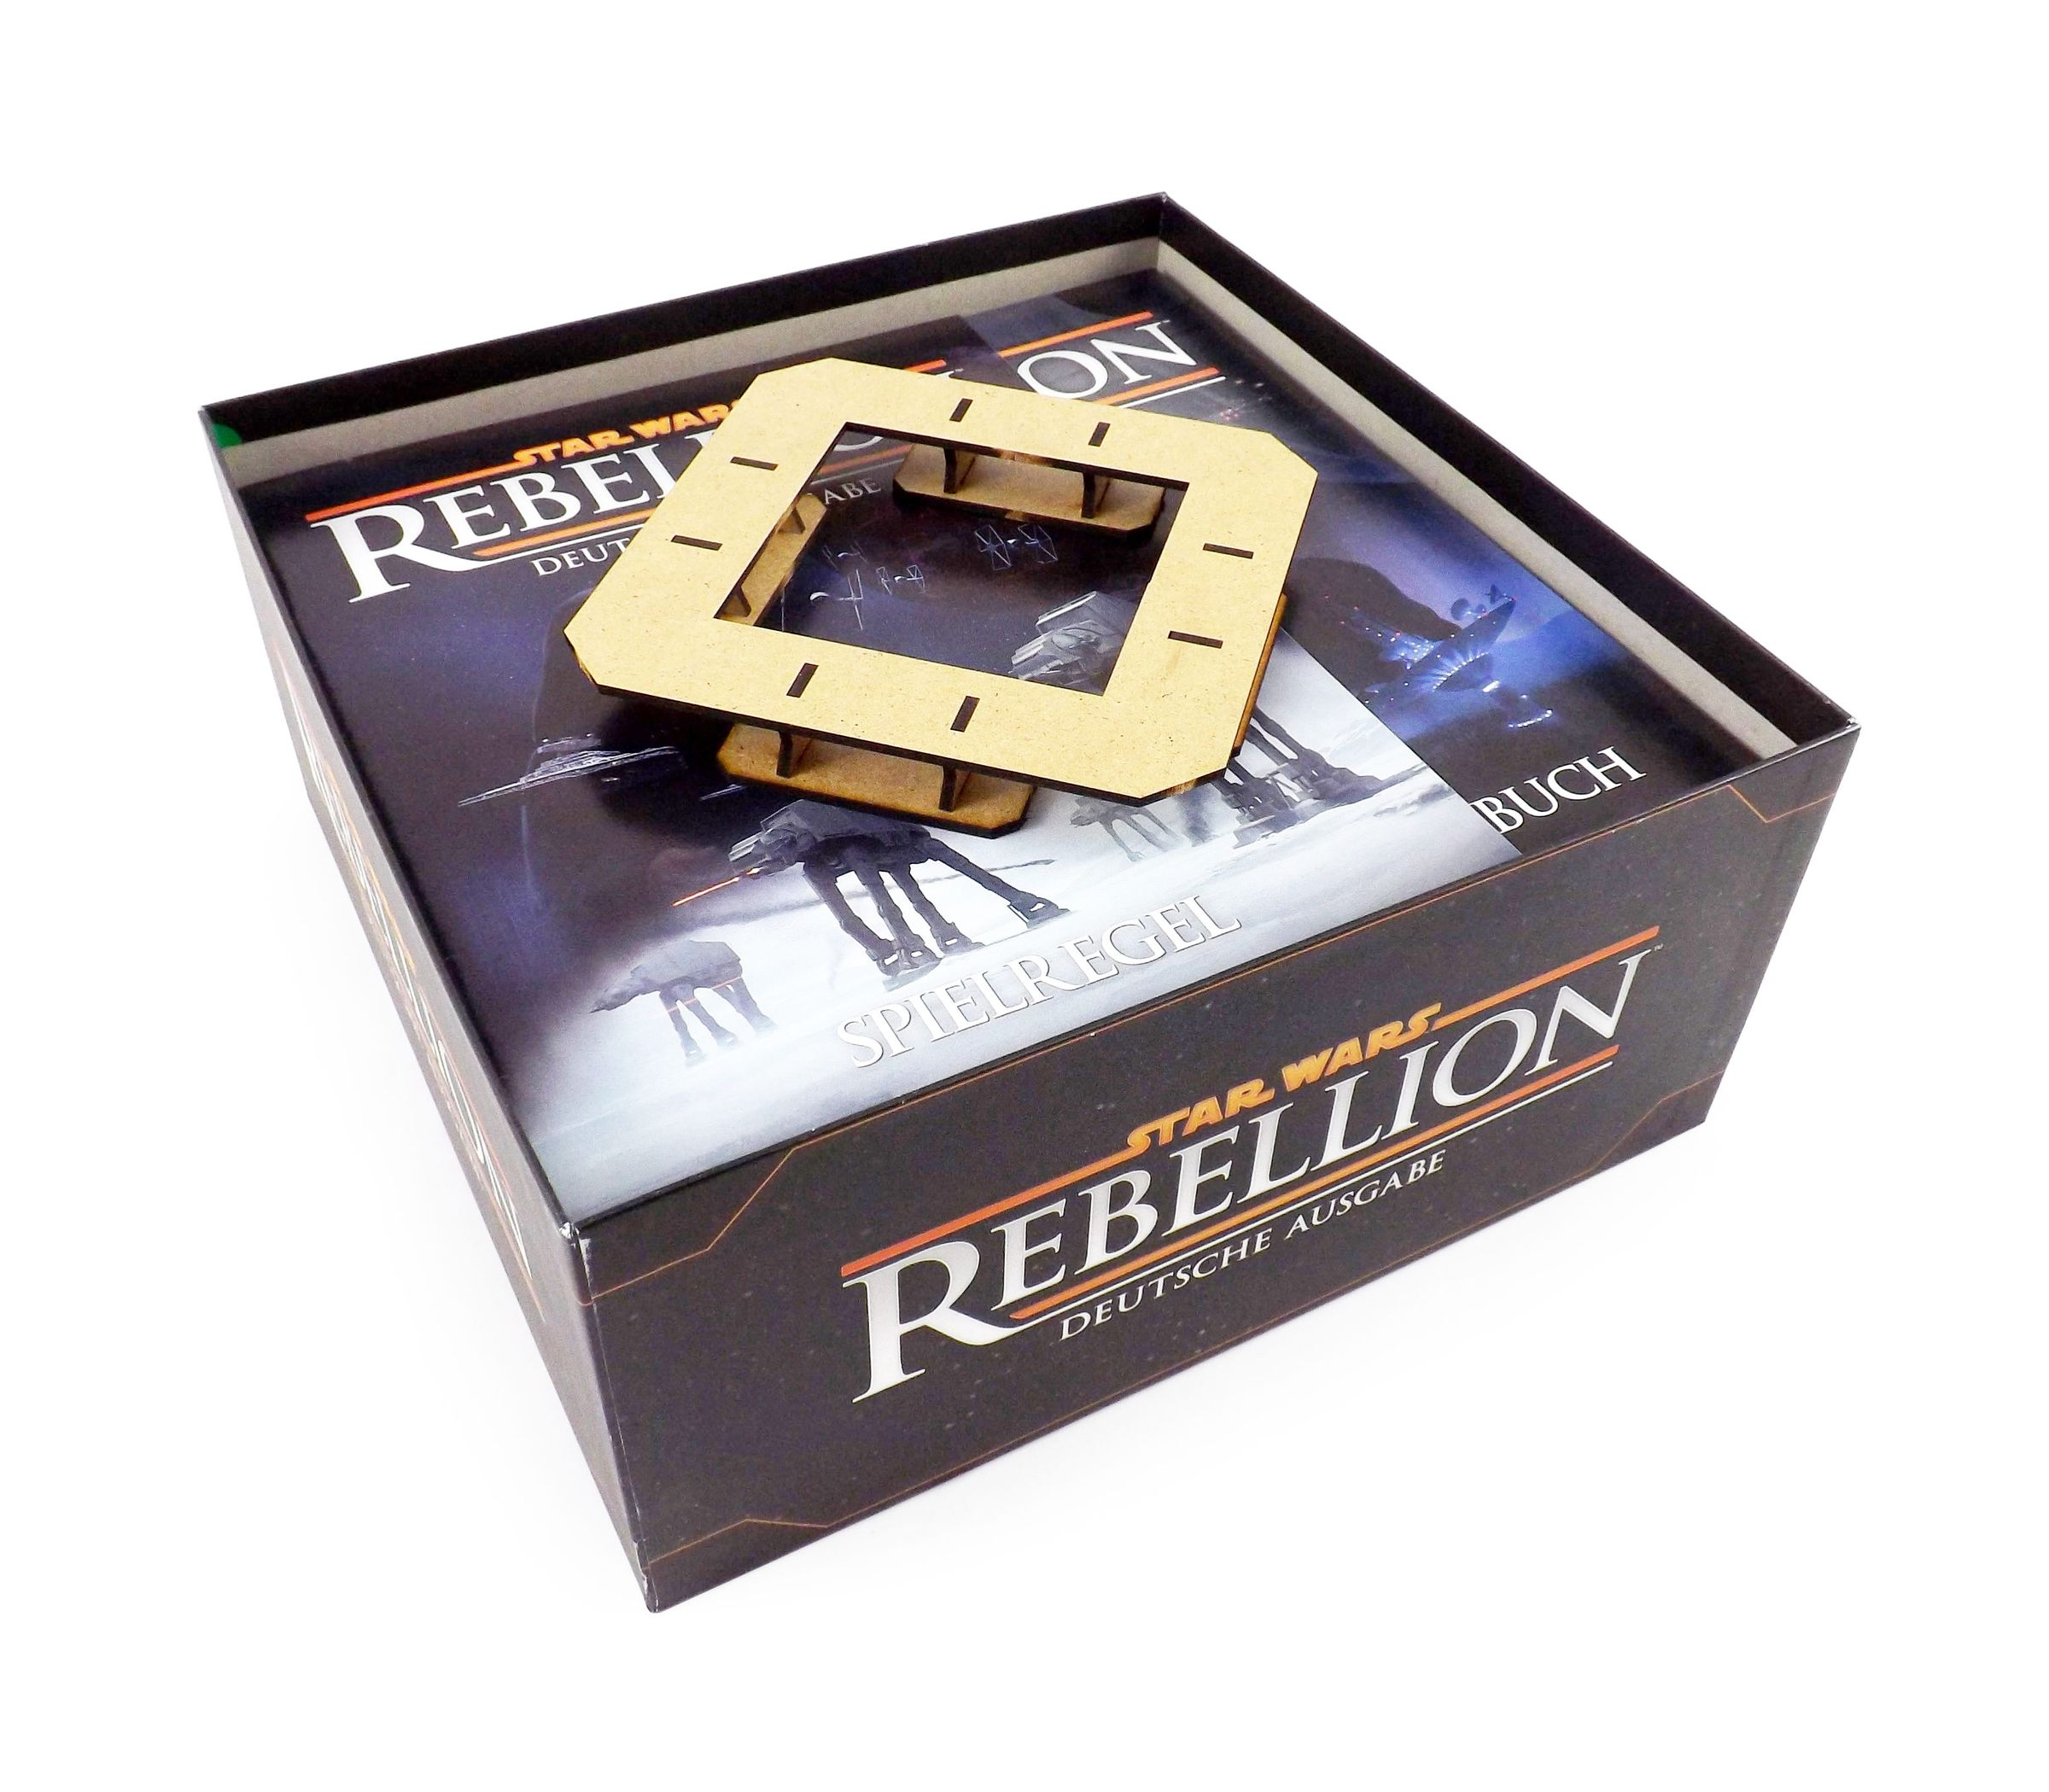 Boardgame Organizer for Star Wars: Rebellion and expansion Rise of the Empire